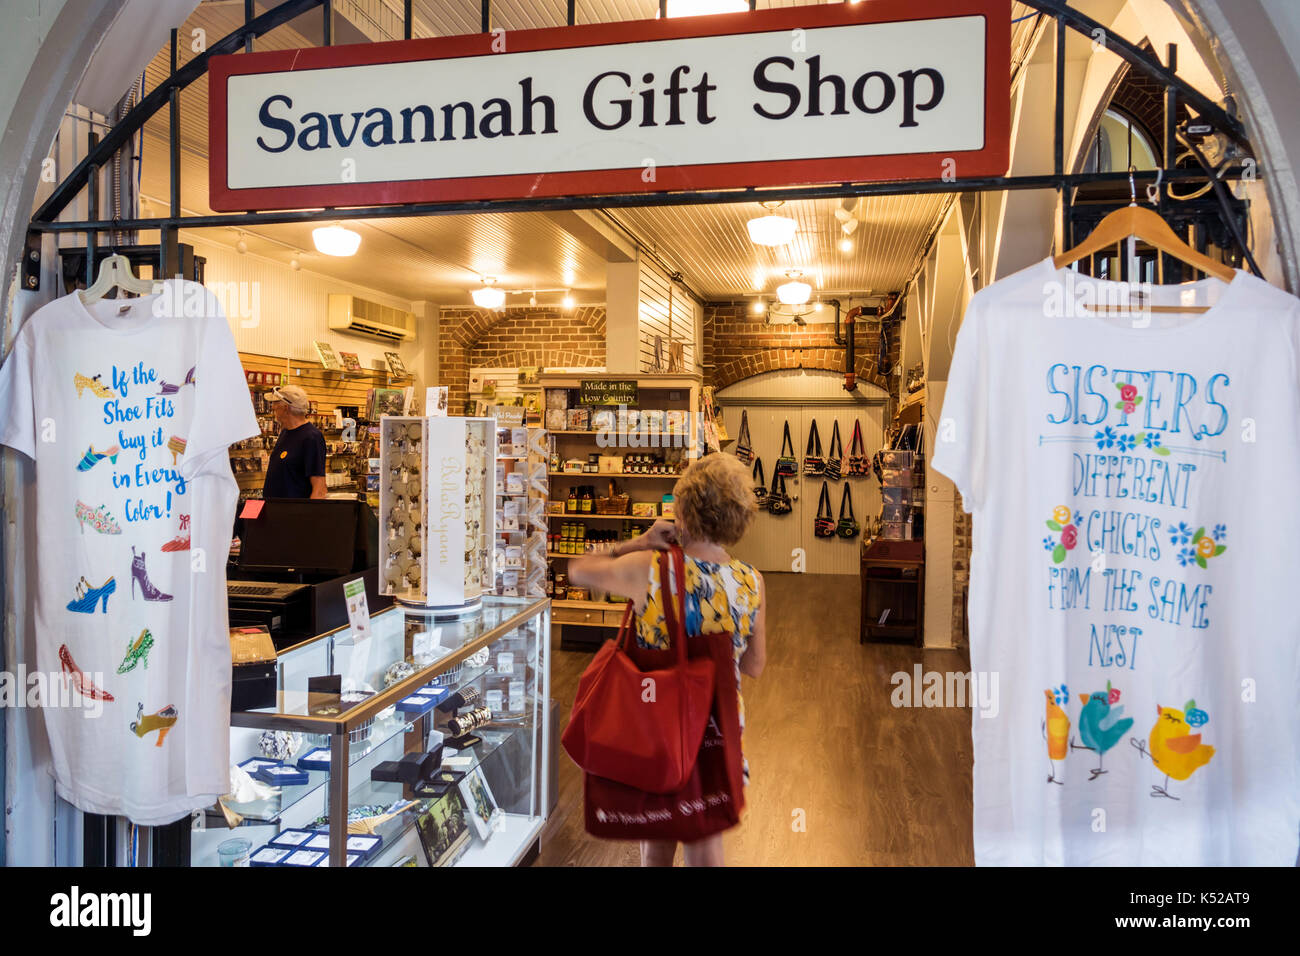 Savannah Georgia Visitors Information Center inside gift shop shopping tee t-shirt - Stock Image